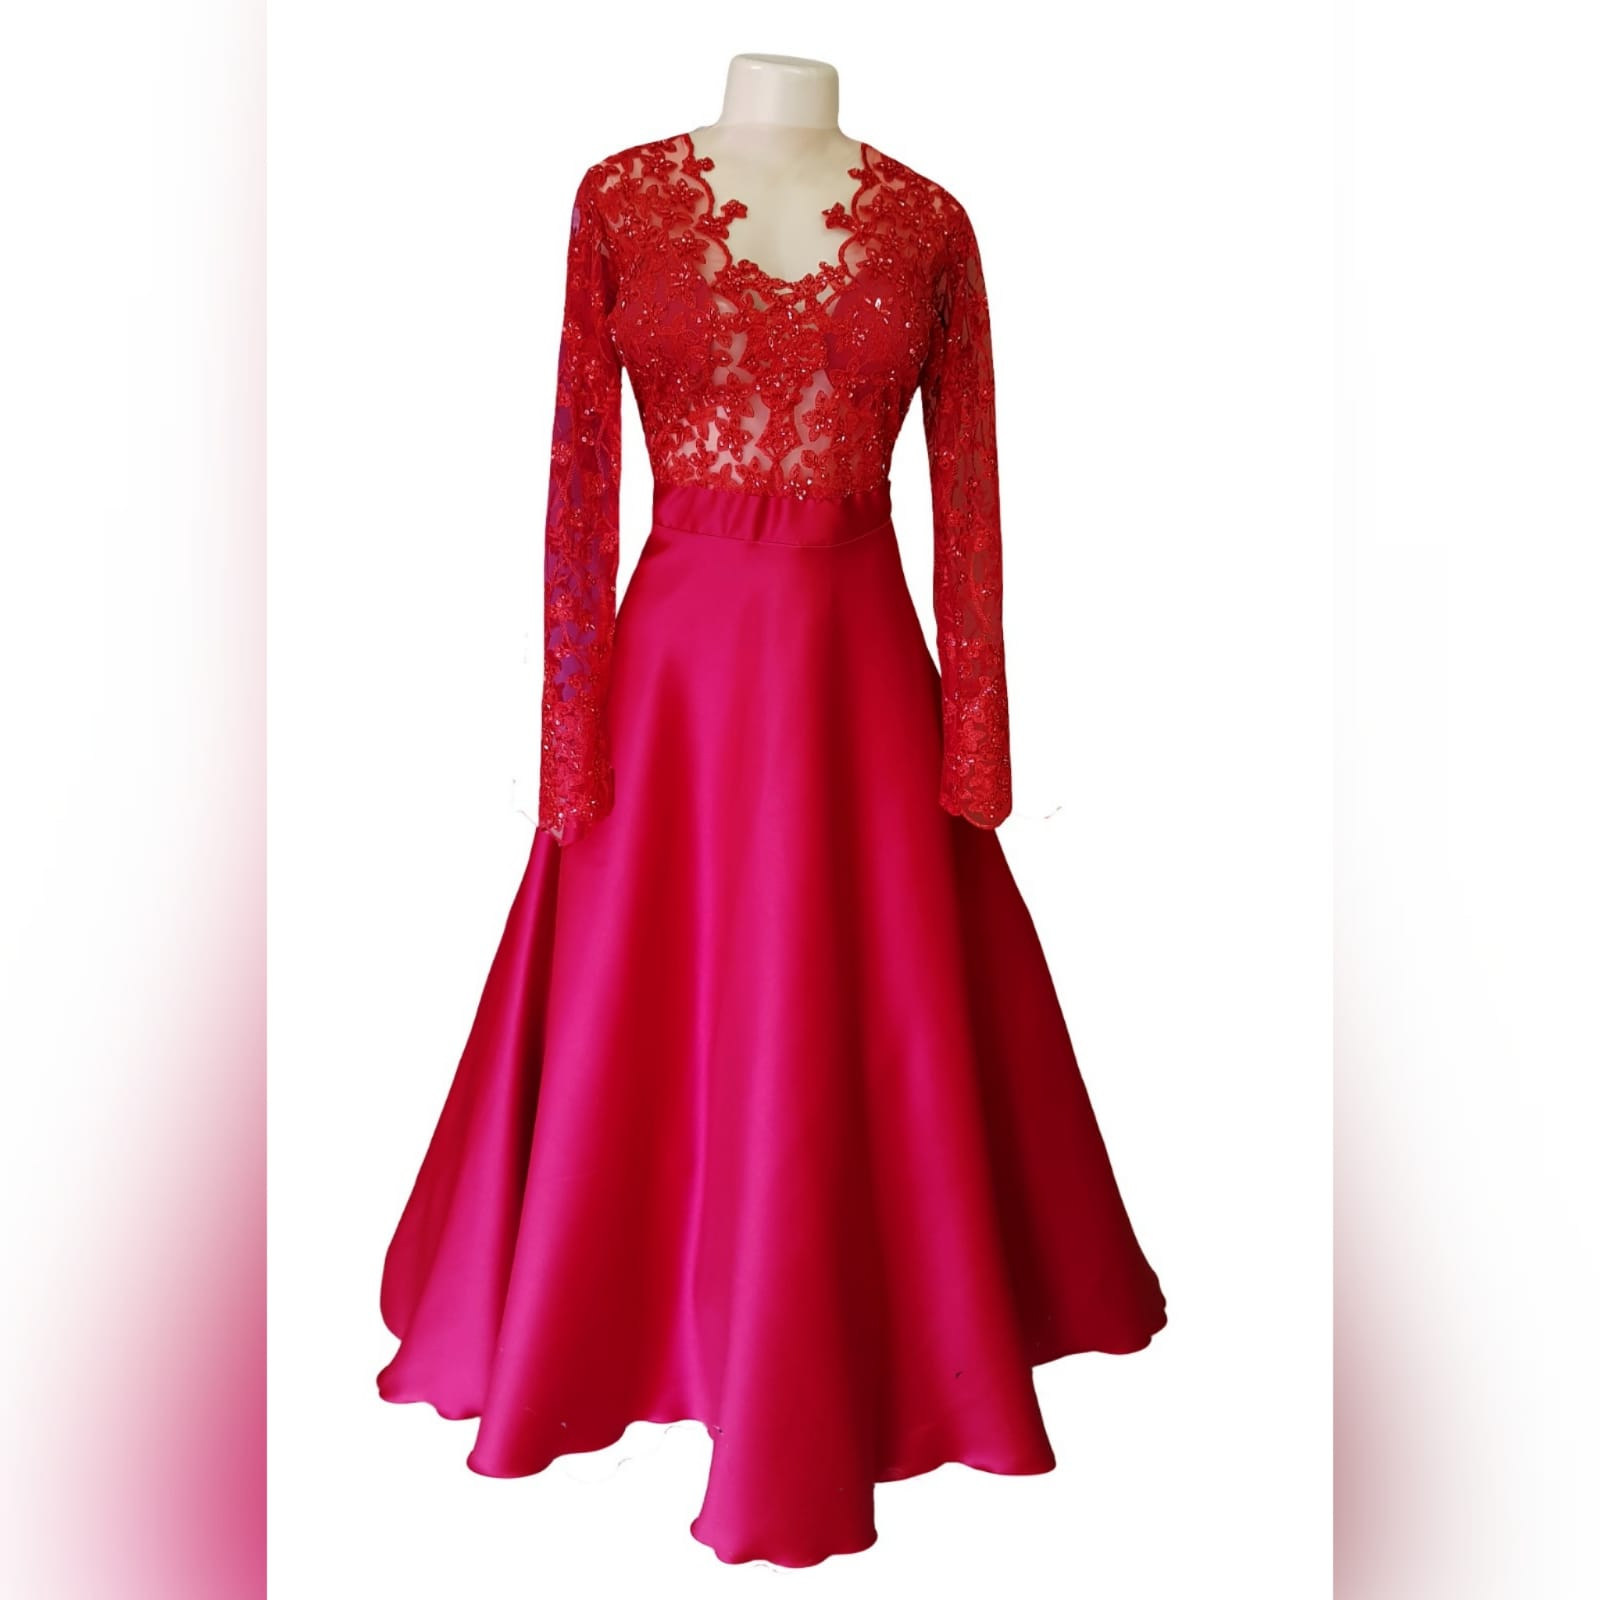 "Classic red lace and satin prom dress 10 <blockquote>""don't compromise yourself. You're all you've got. "" janis joplin</blockquote>a classic red lace and satin prom dress created for my client's special occasion. With a sheer lace and sleeves bodice with a touch of shine, and a row of buttons to finish off the sensual back design."